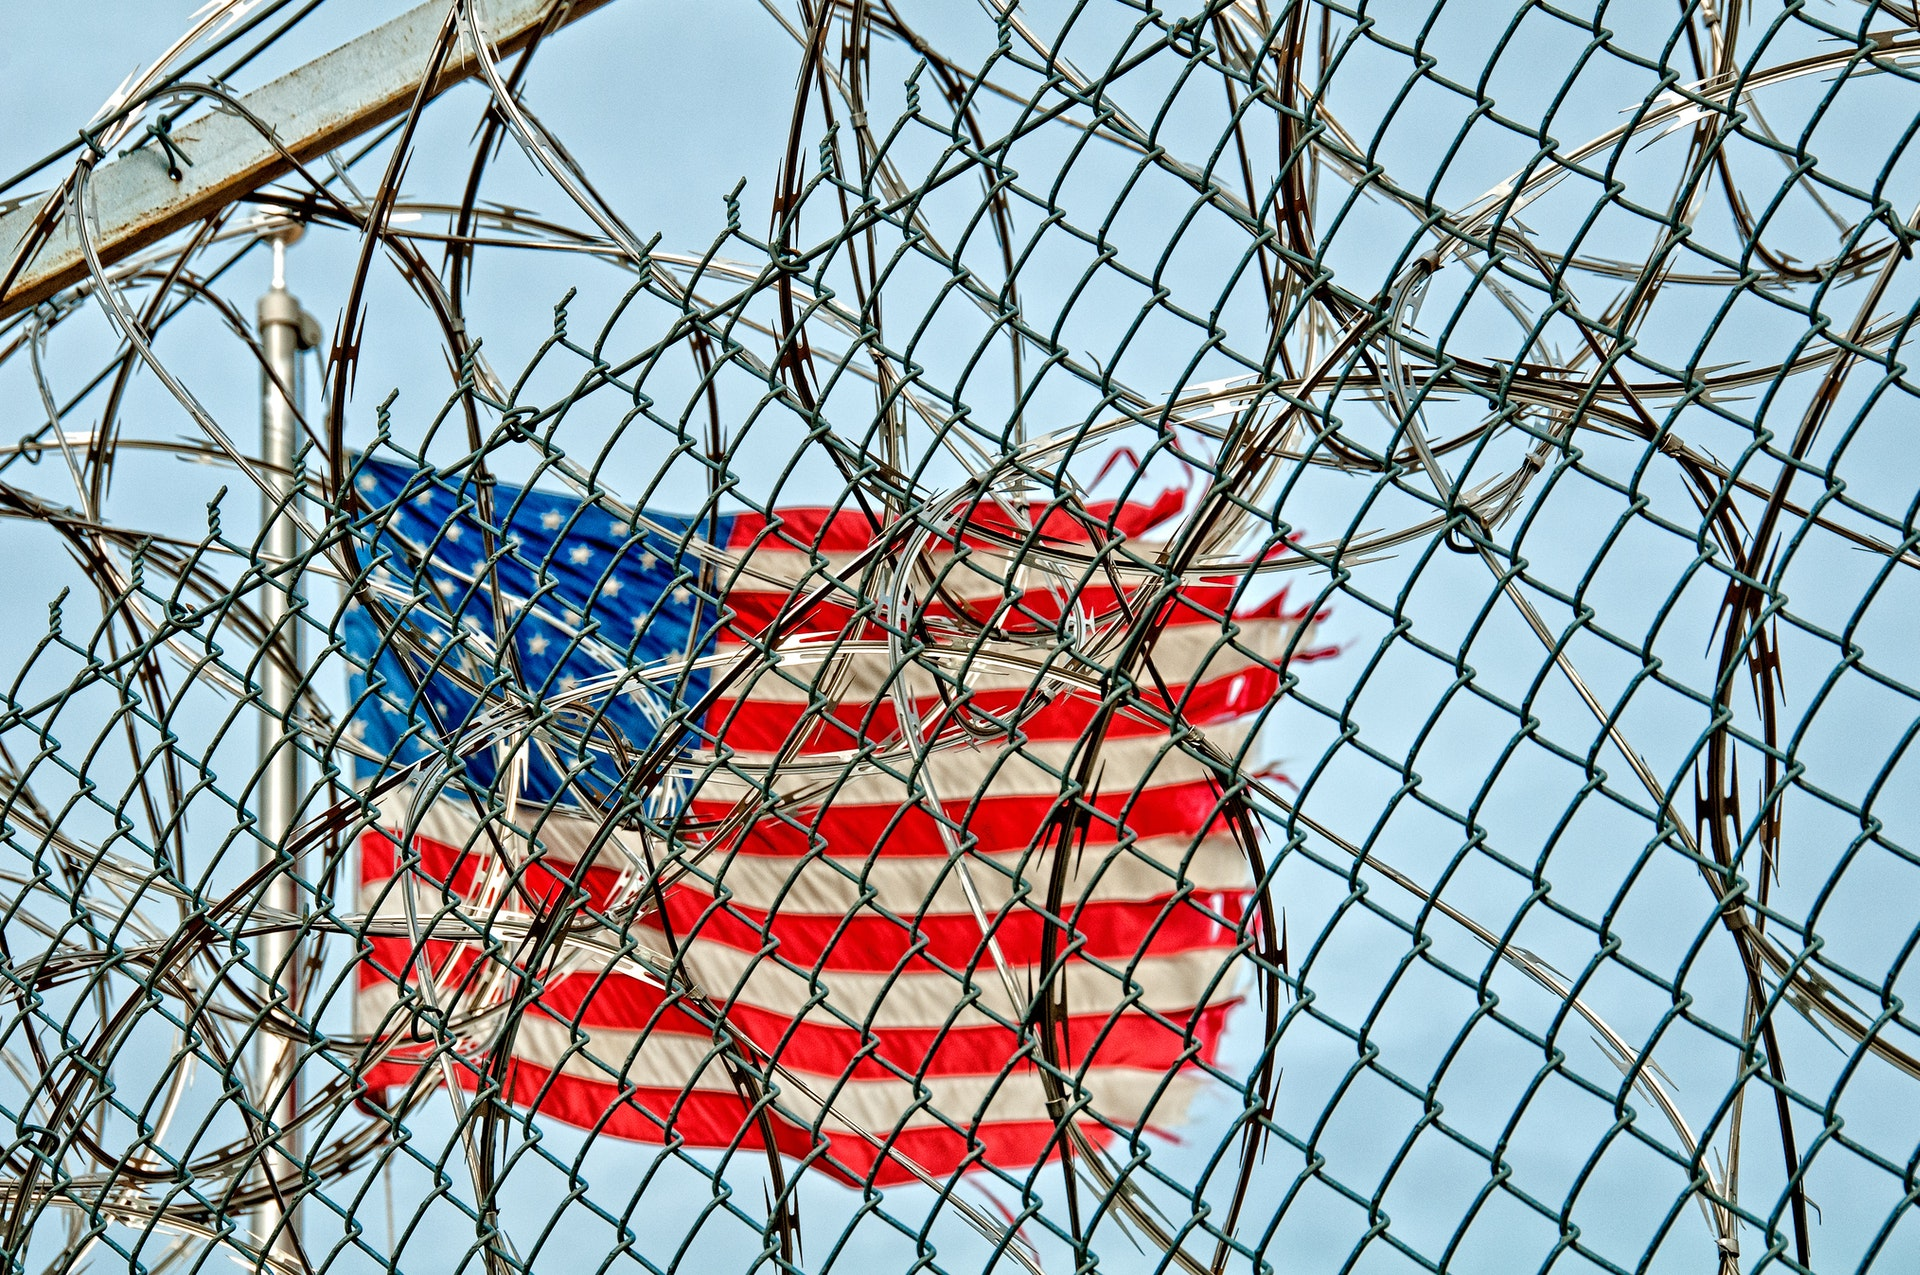 The U.S. Prison System is Failing People and Communities